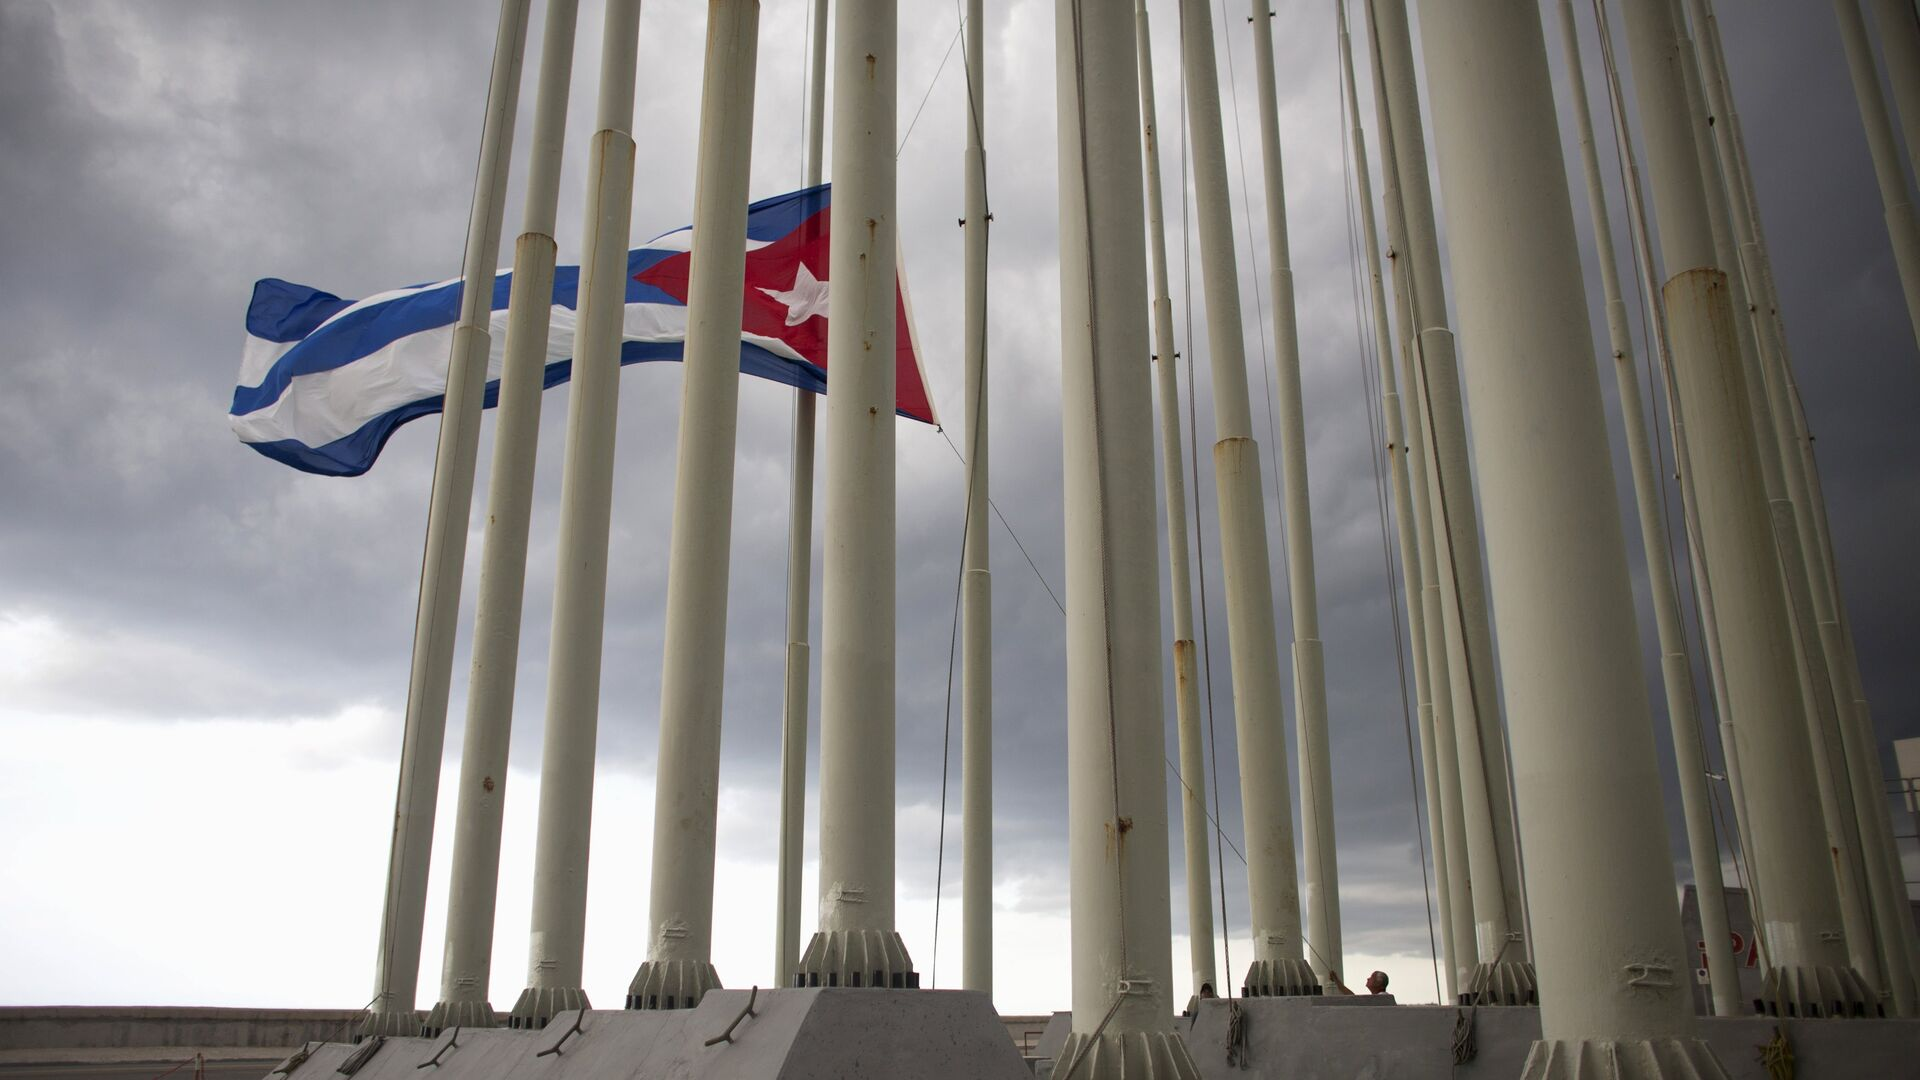 A man lowers the Cuban flag in Havana, August 15, 2015 - Sputnik Mundo, 1920, 19.04.2021